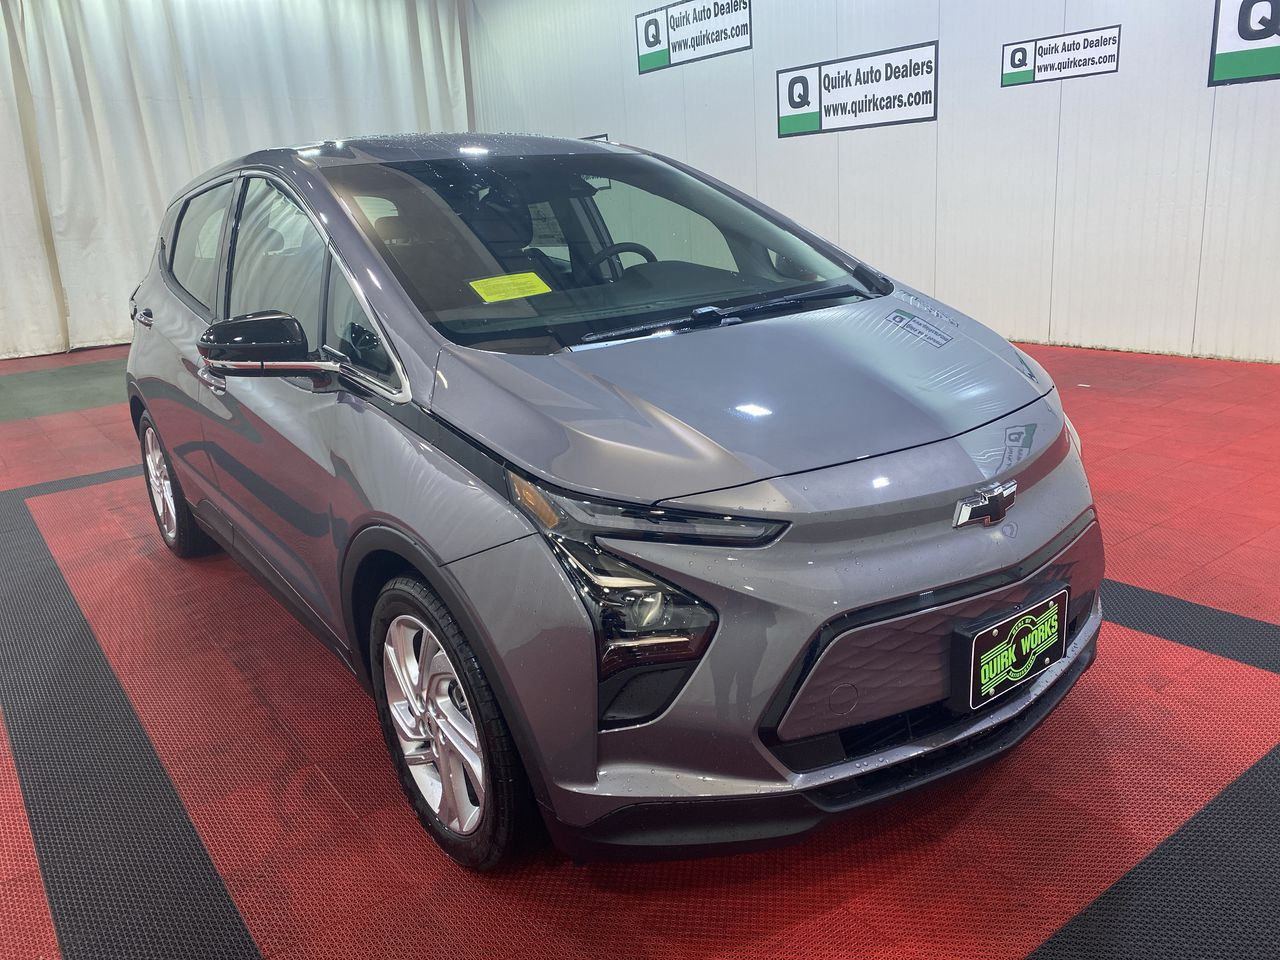 2022 Chevrolet Bolt EV 2022 Models! Driver Confidence Package, Comfort and Convenience Package